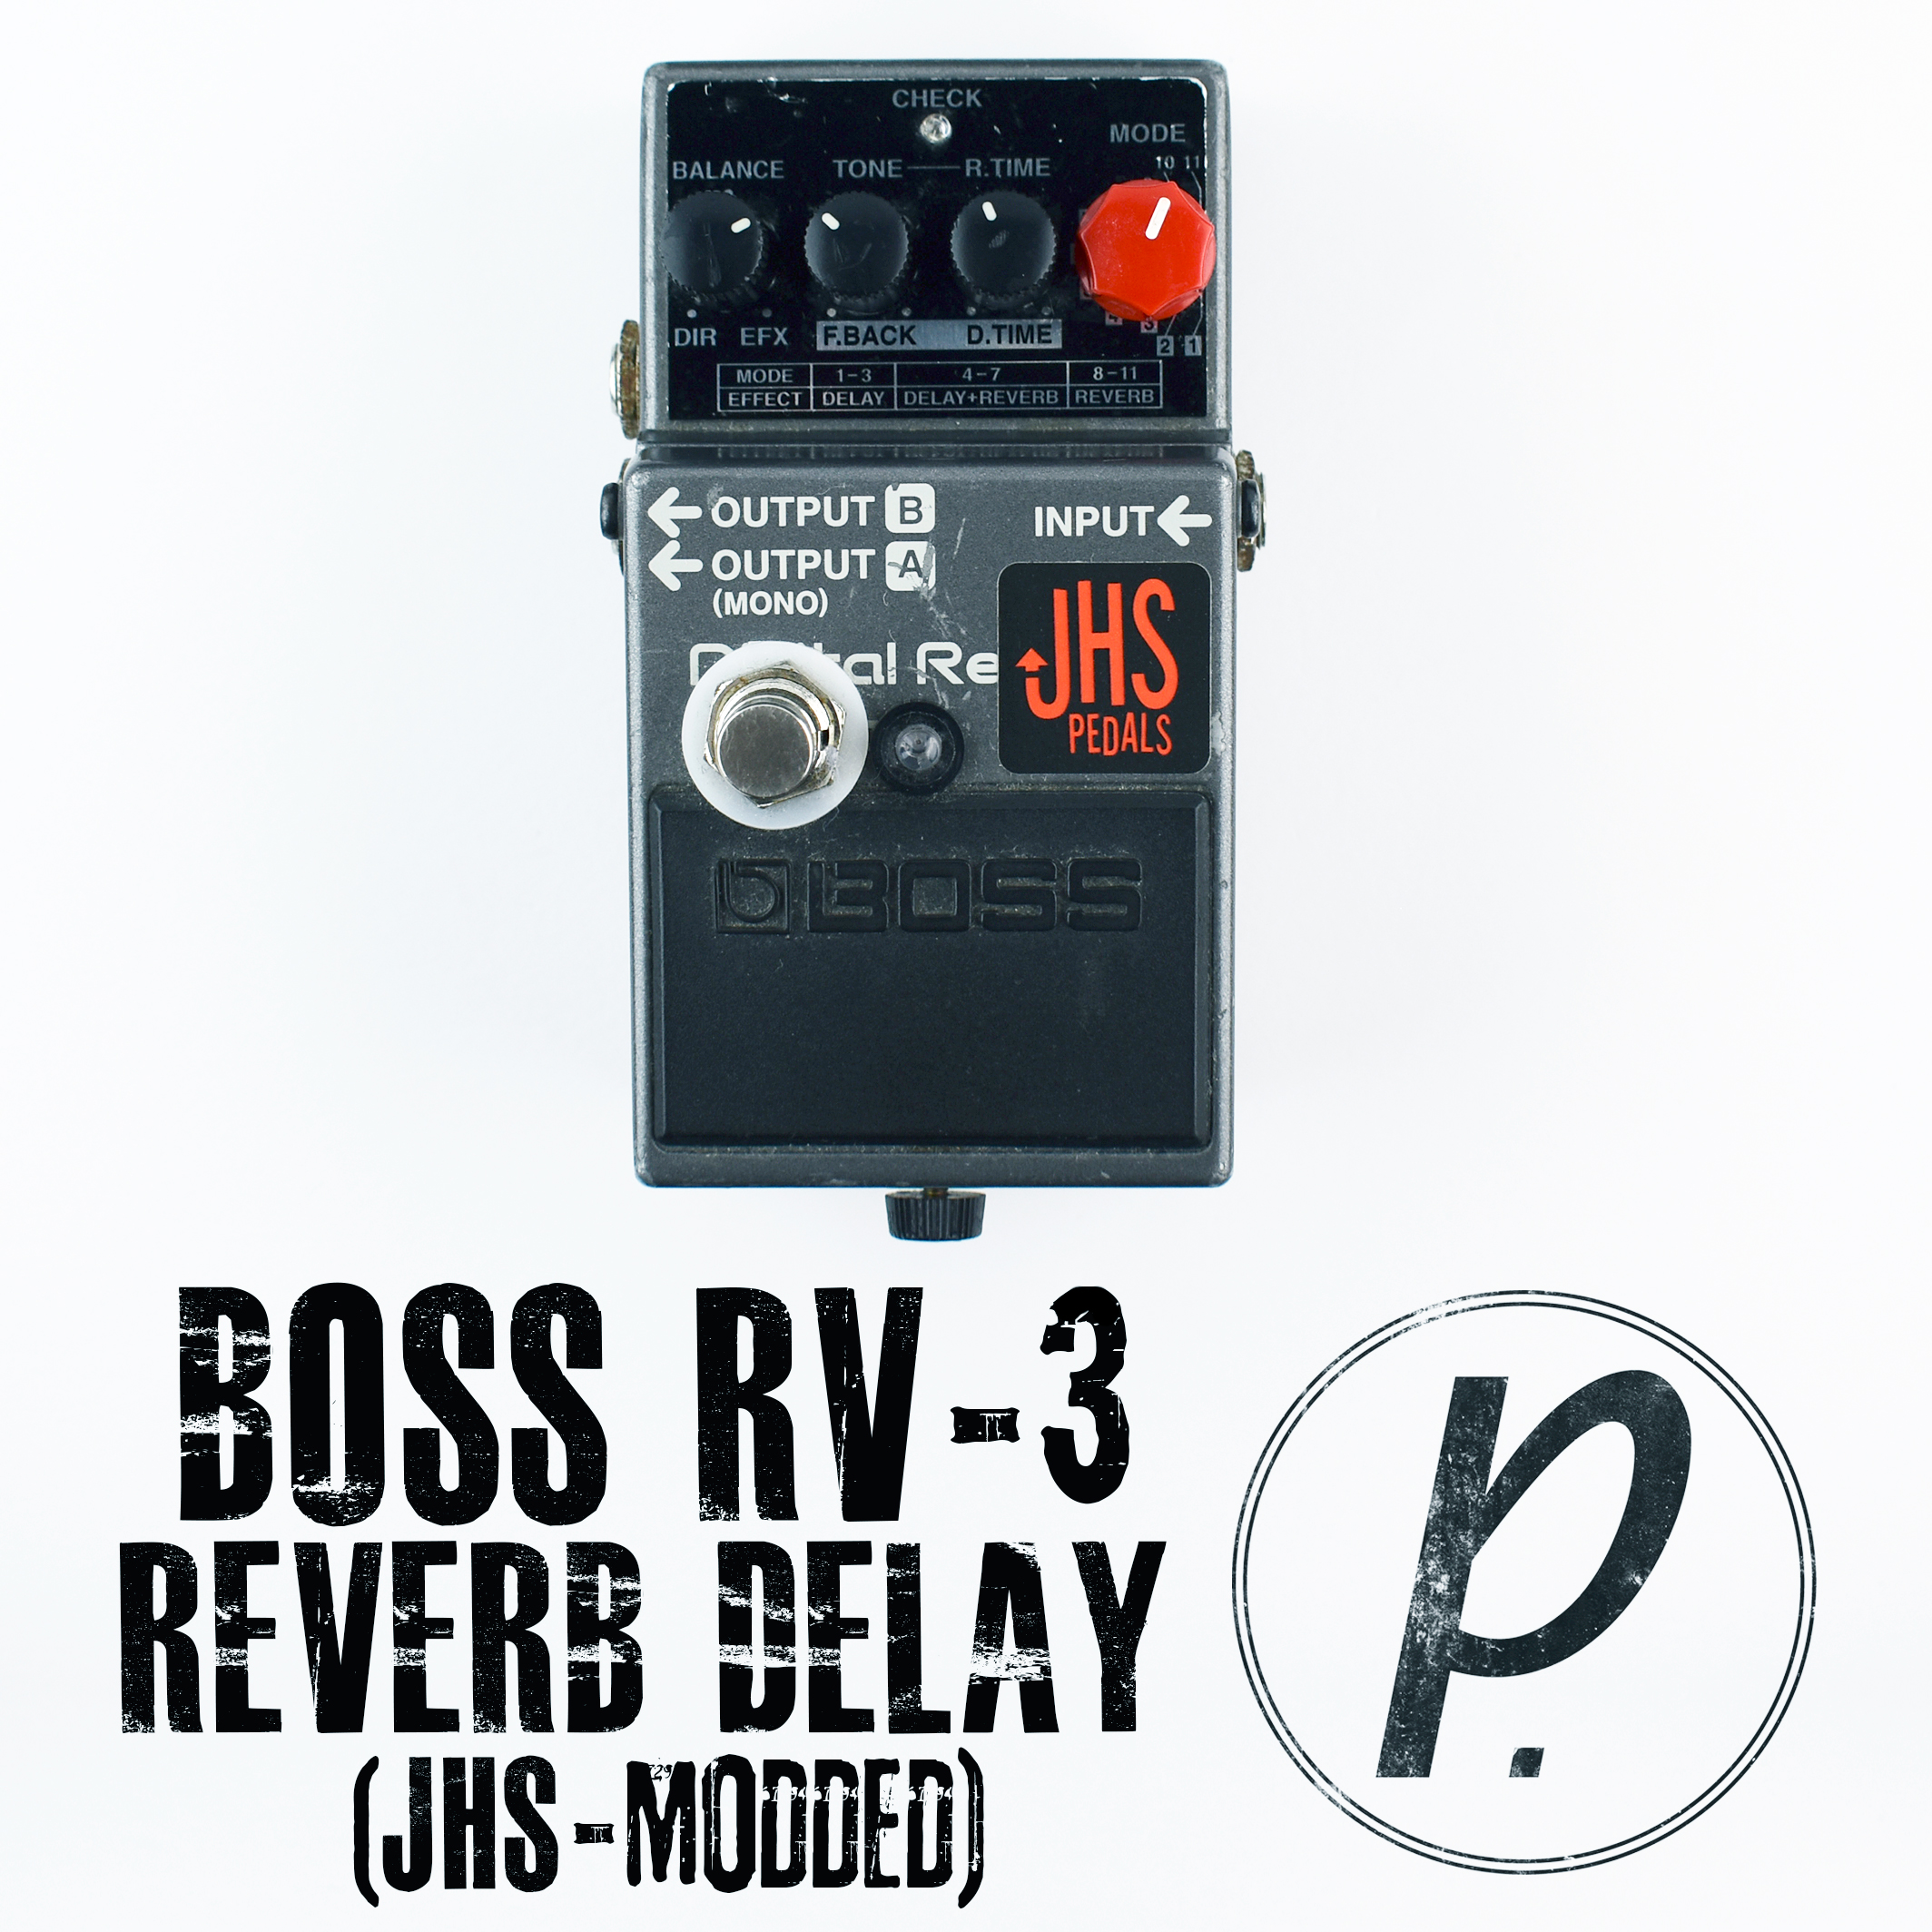 boss rv 3 digital reverb delay jhs dual mode mod pedal of the day. Black Bedroom Furniture Sets. Home Design Ideas